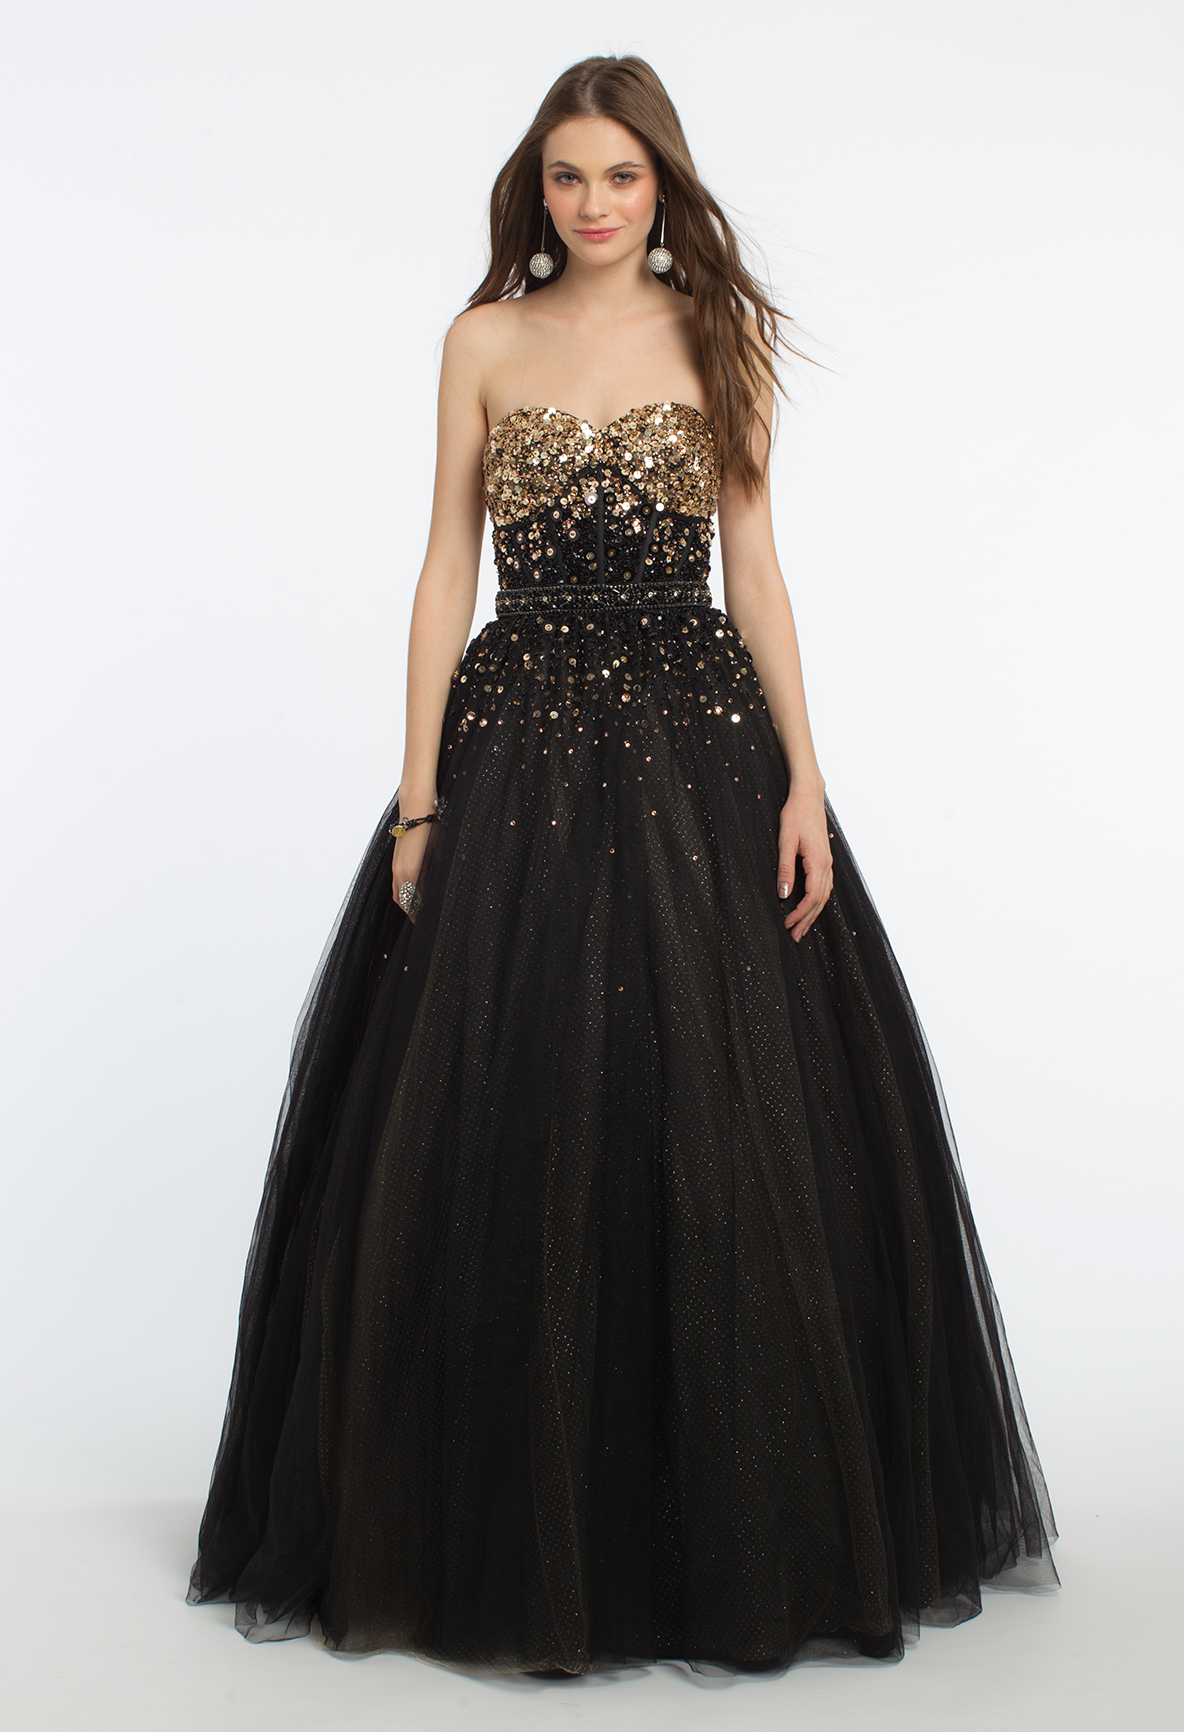 Nothing says princess like this long evening dress with its